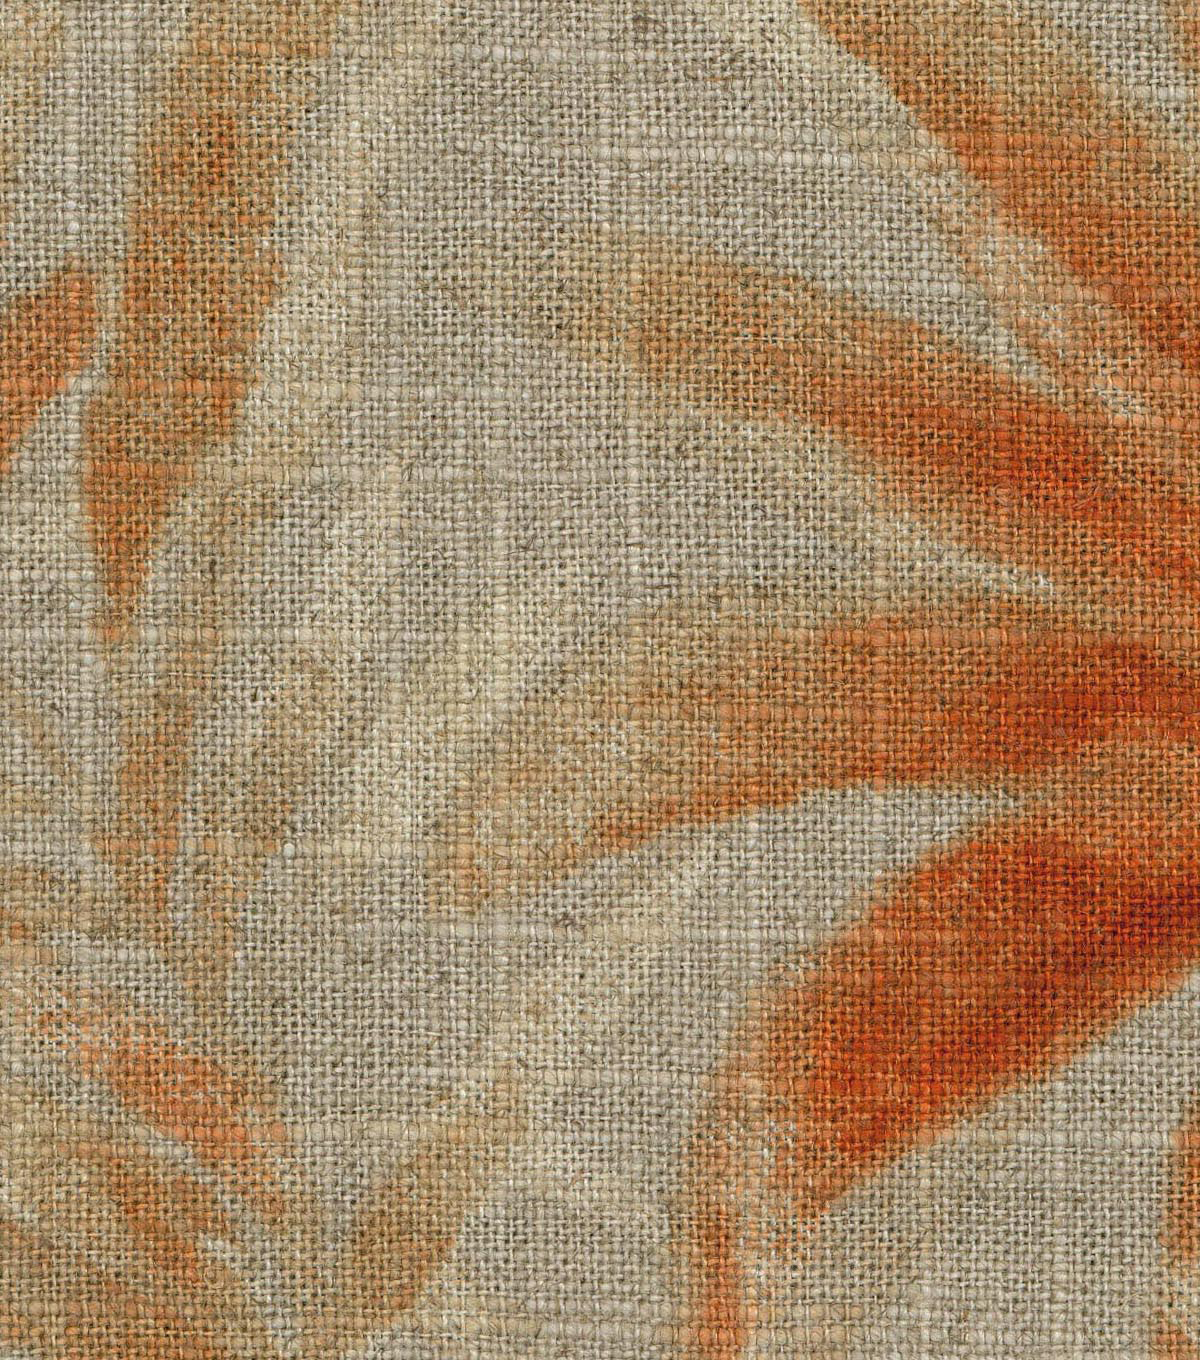 Tommy Bahama Multi-Purpose Decor Fabric 54\u0027\u0027-Nutmeg Balmy Days